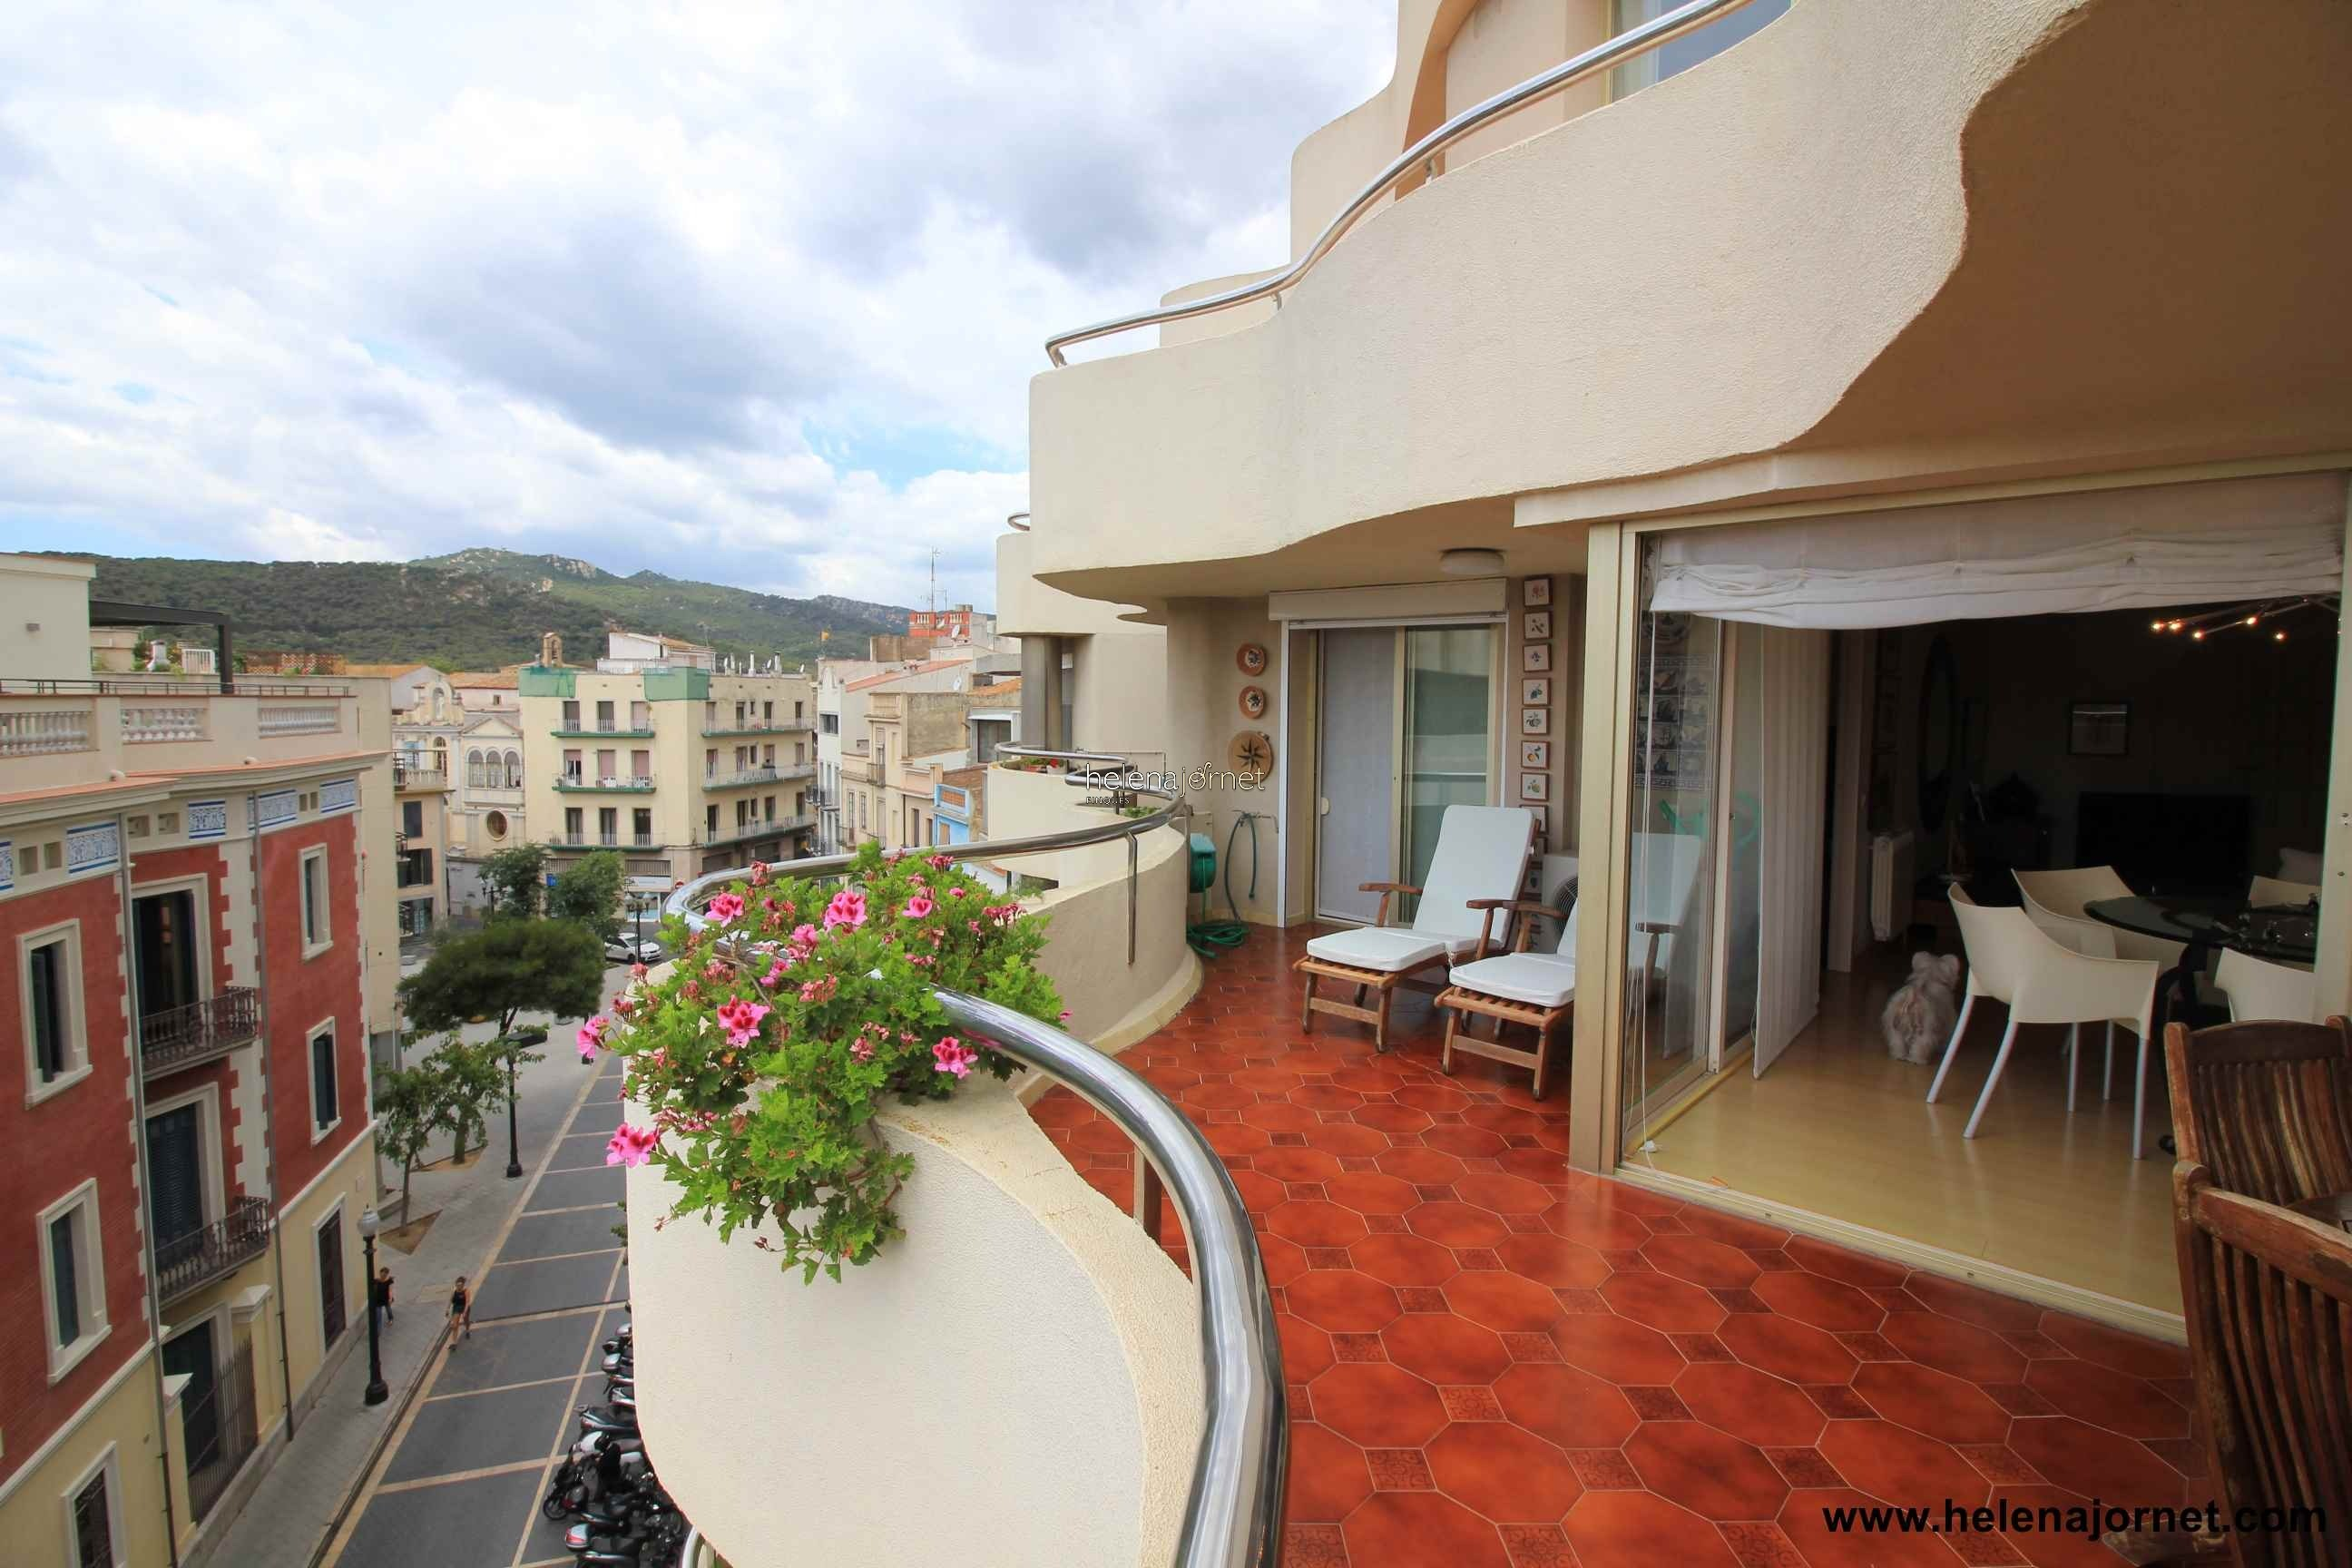 Apartment 300 m from the beach - 70004 Rambla Vidal